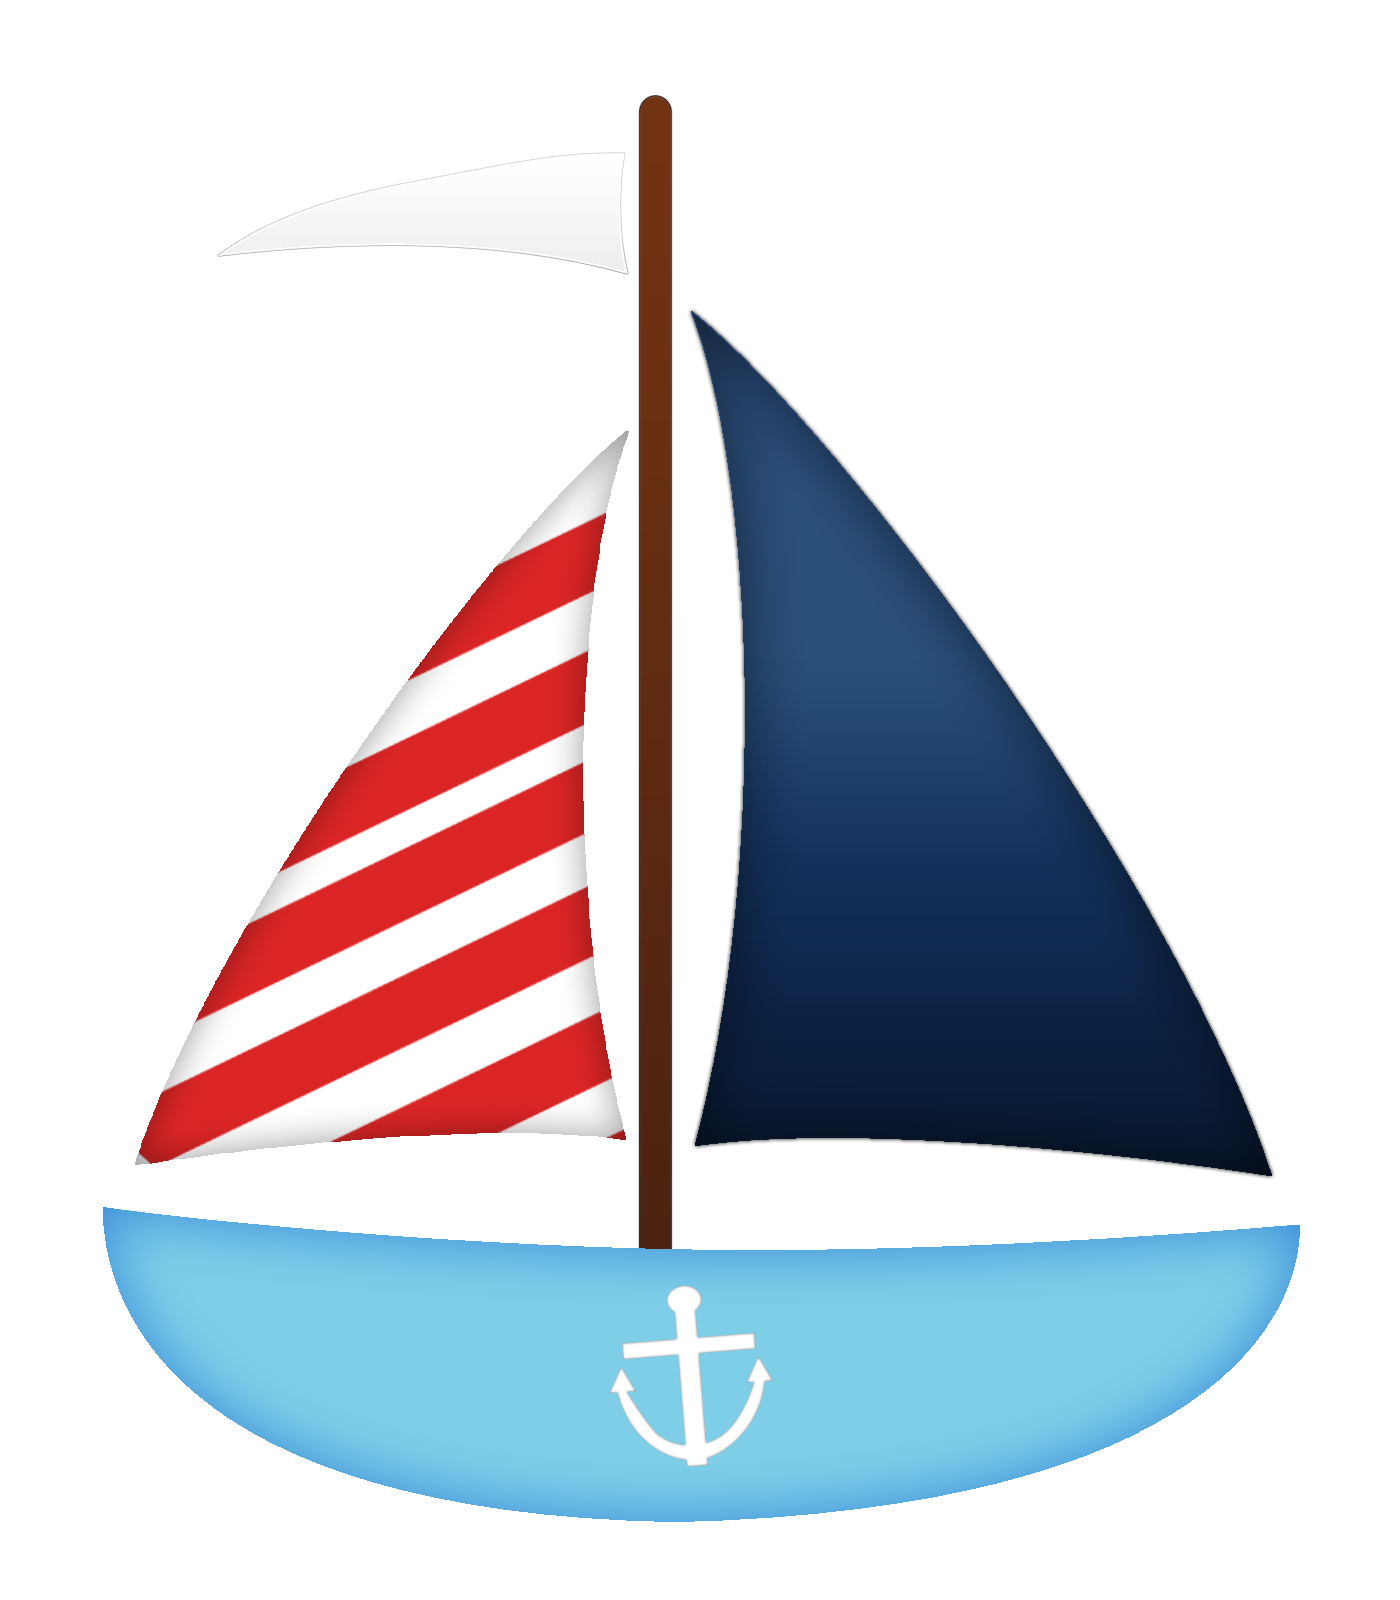 clipart library library Sail boat